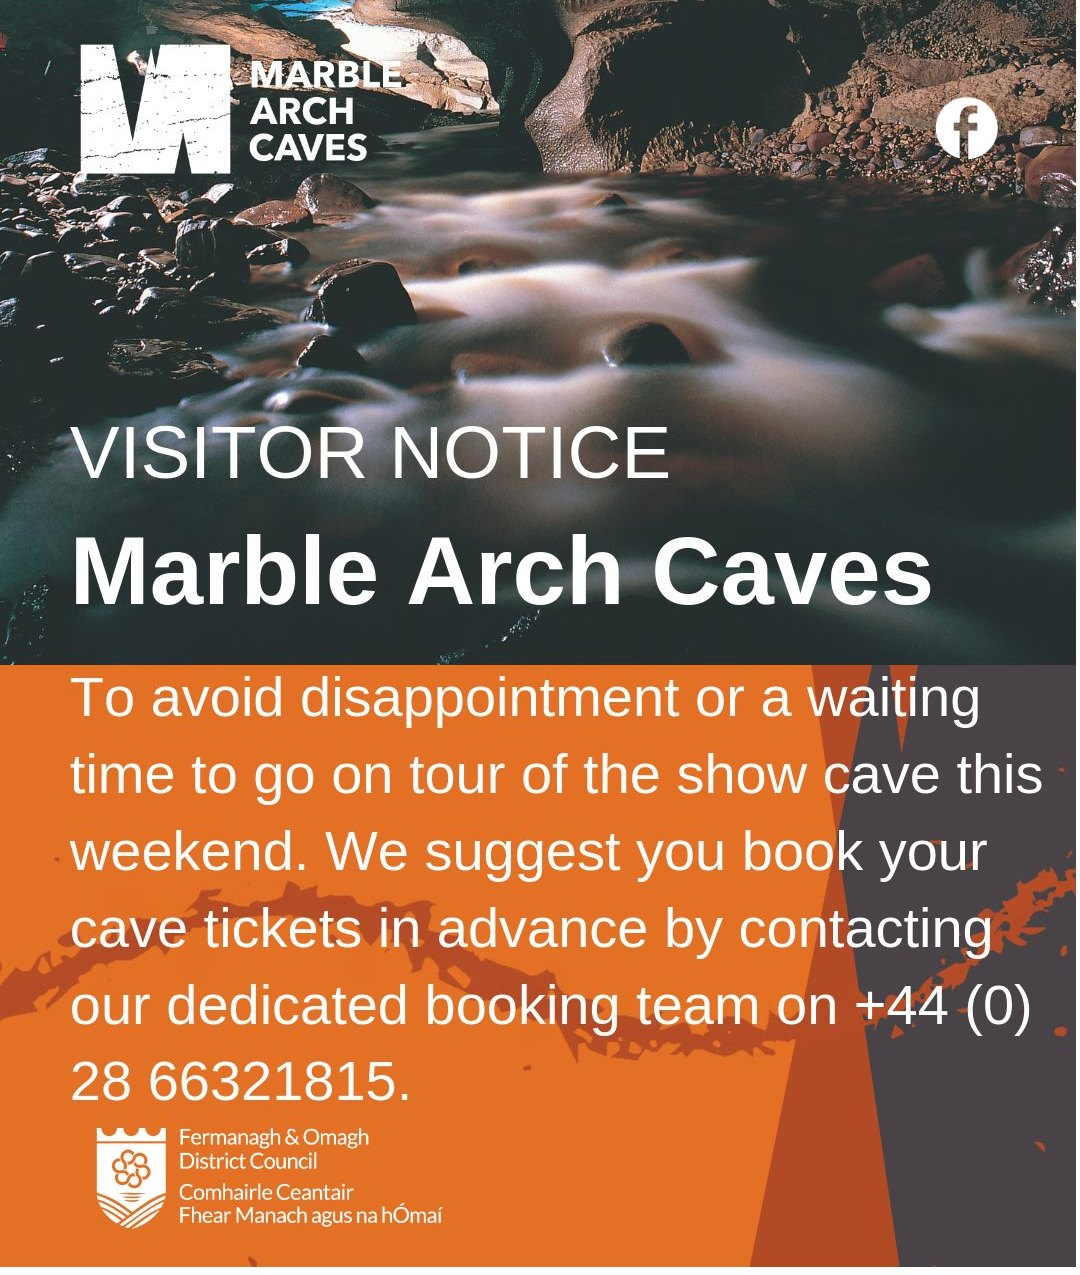 VISITOR NOTICE MARBLE ARCH CAVES